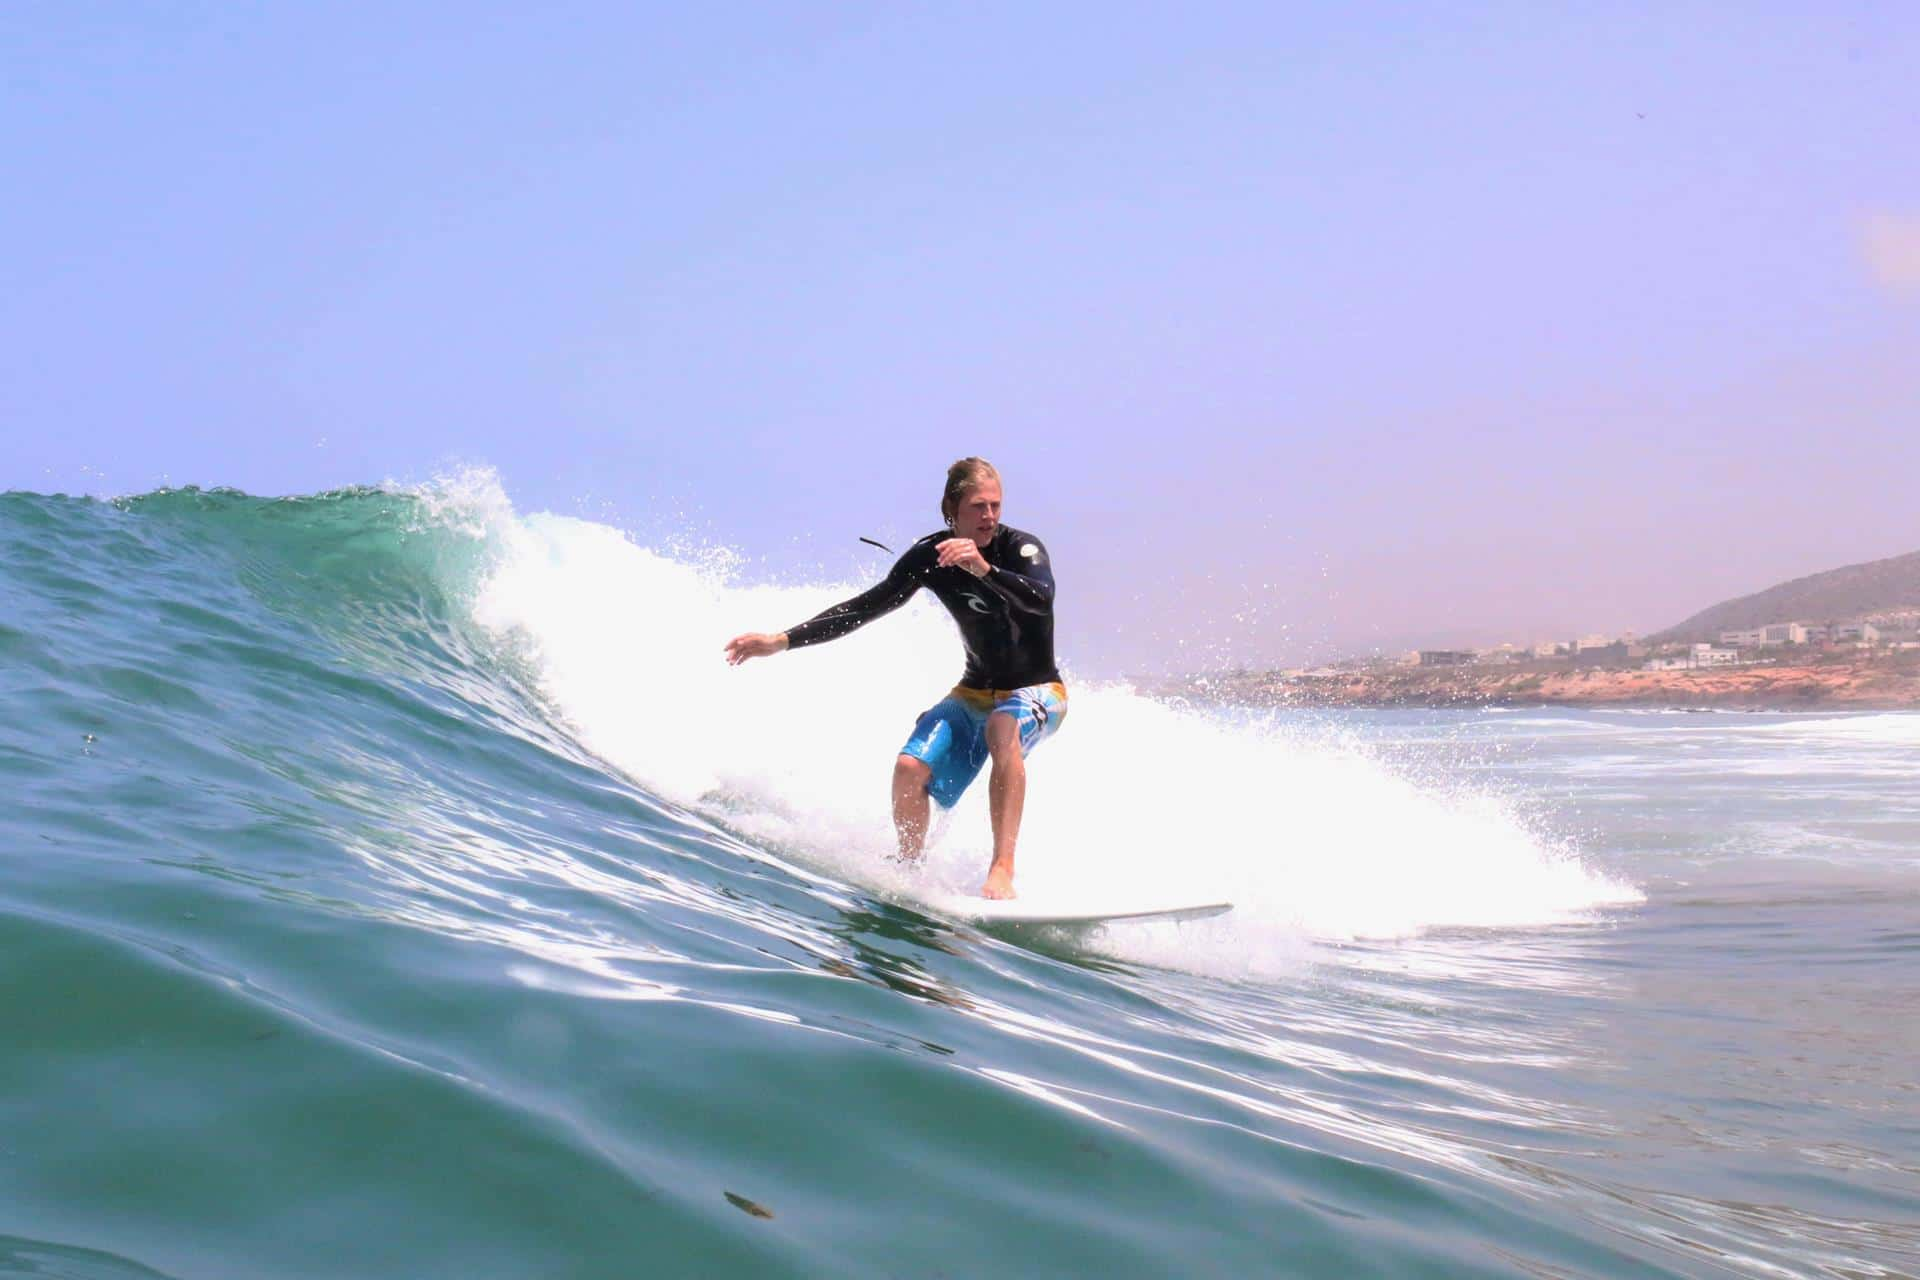 surfing the waves in Blue Waves